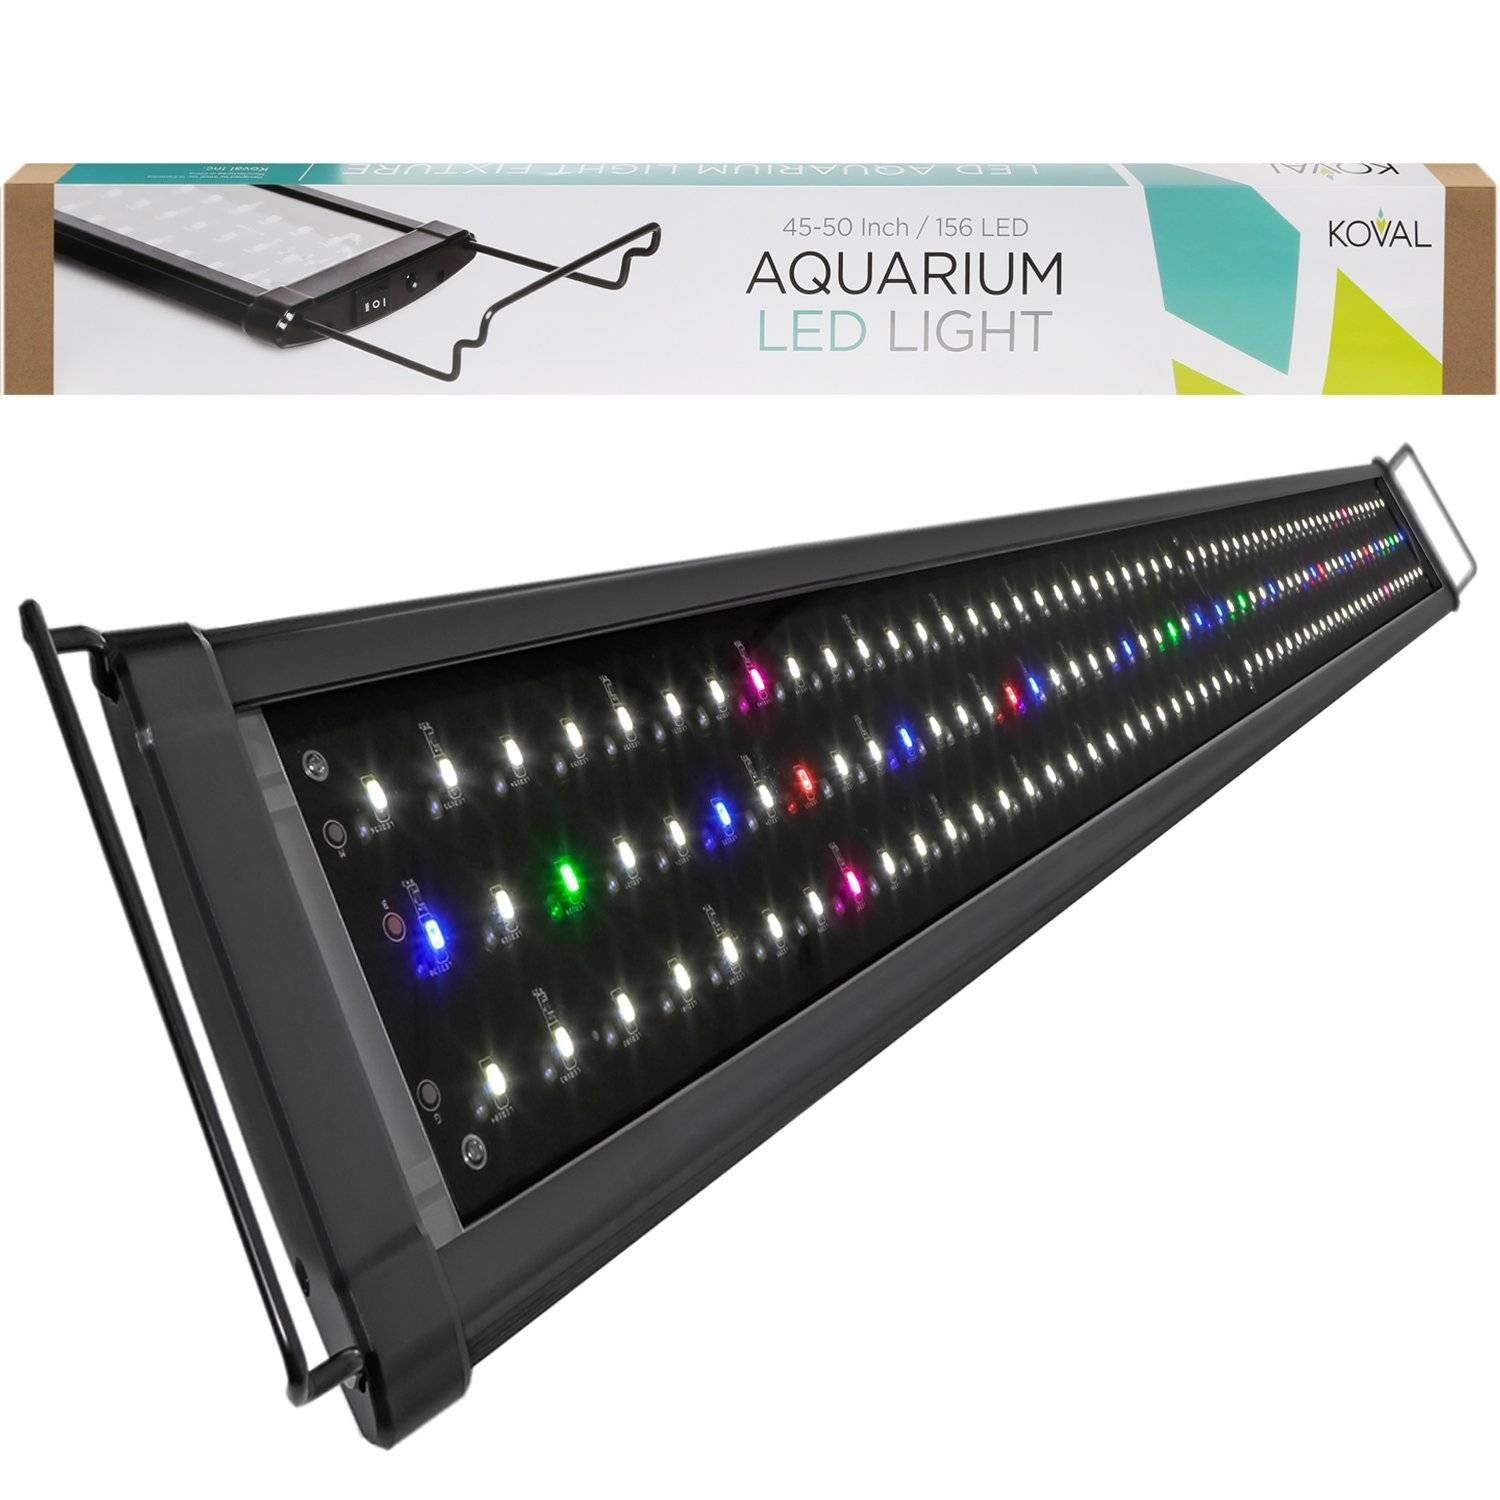 Koval Inc. 156 LED Aquarium Lighting for 45 inch - 50 inch Fish Tank Light Hood